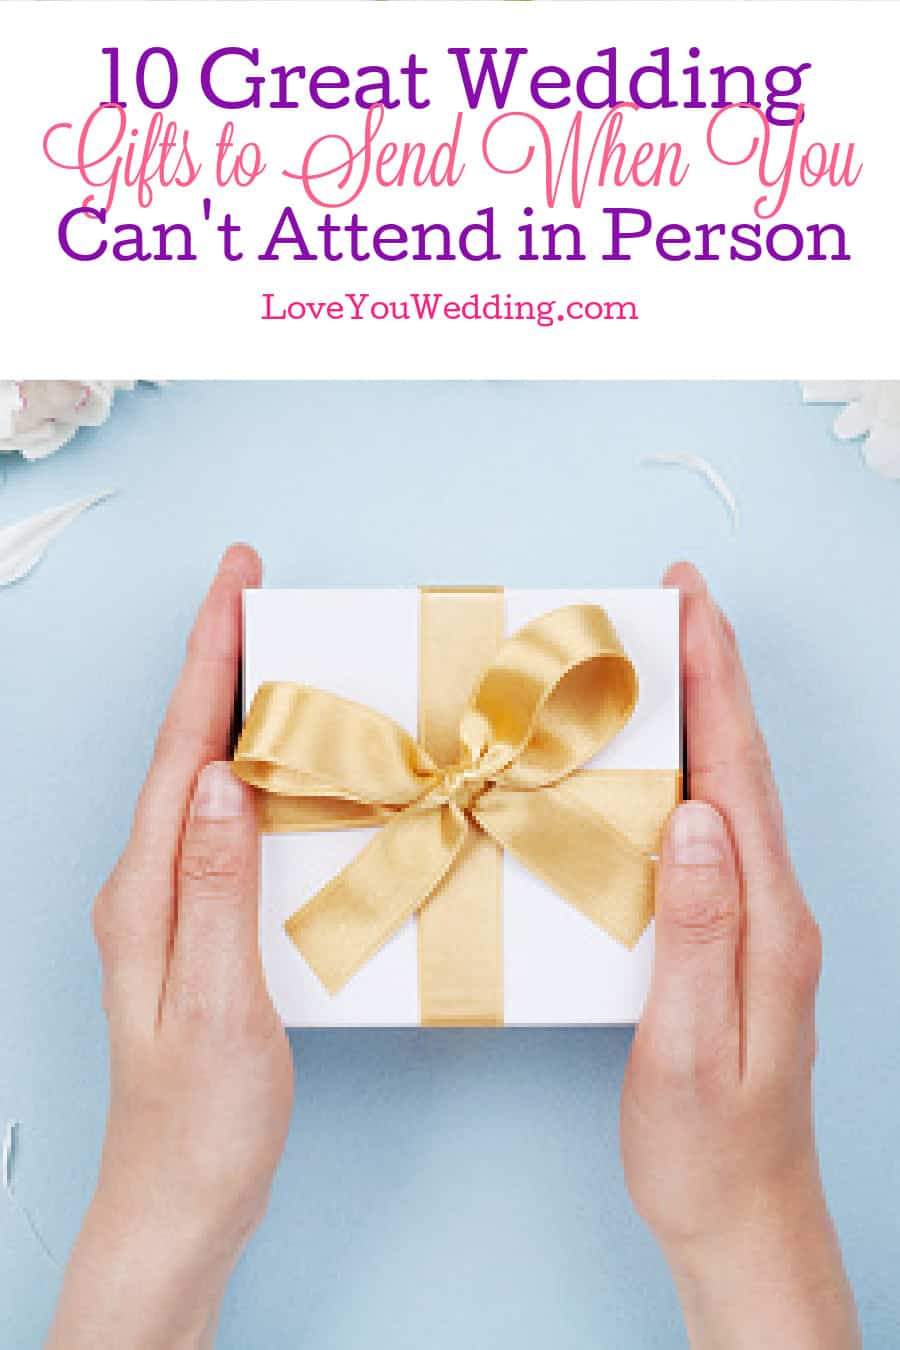 Do you need to send wedding gifts when not attending? If so, what are some great ideas? Read on for the answers to both questions!